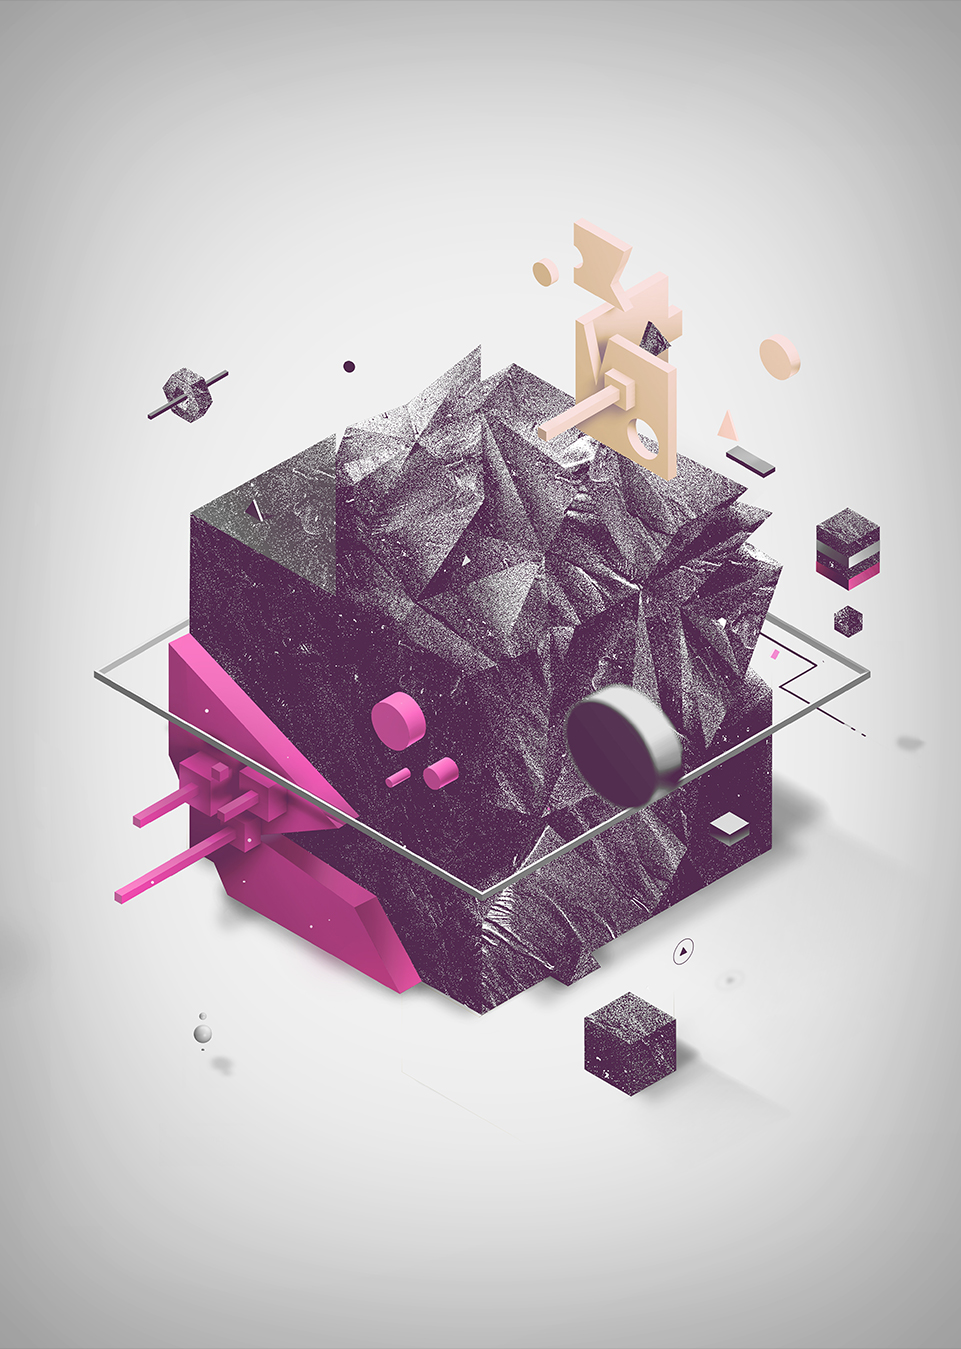 amazing graphic design works by rogier de boeve 3 20 Amazing Graphic Design Works by Rogier de Boeve